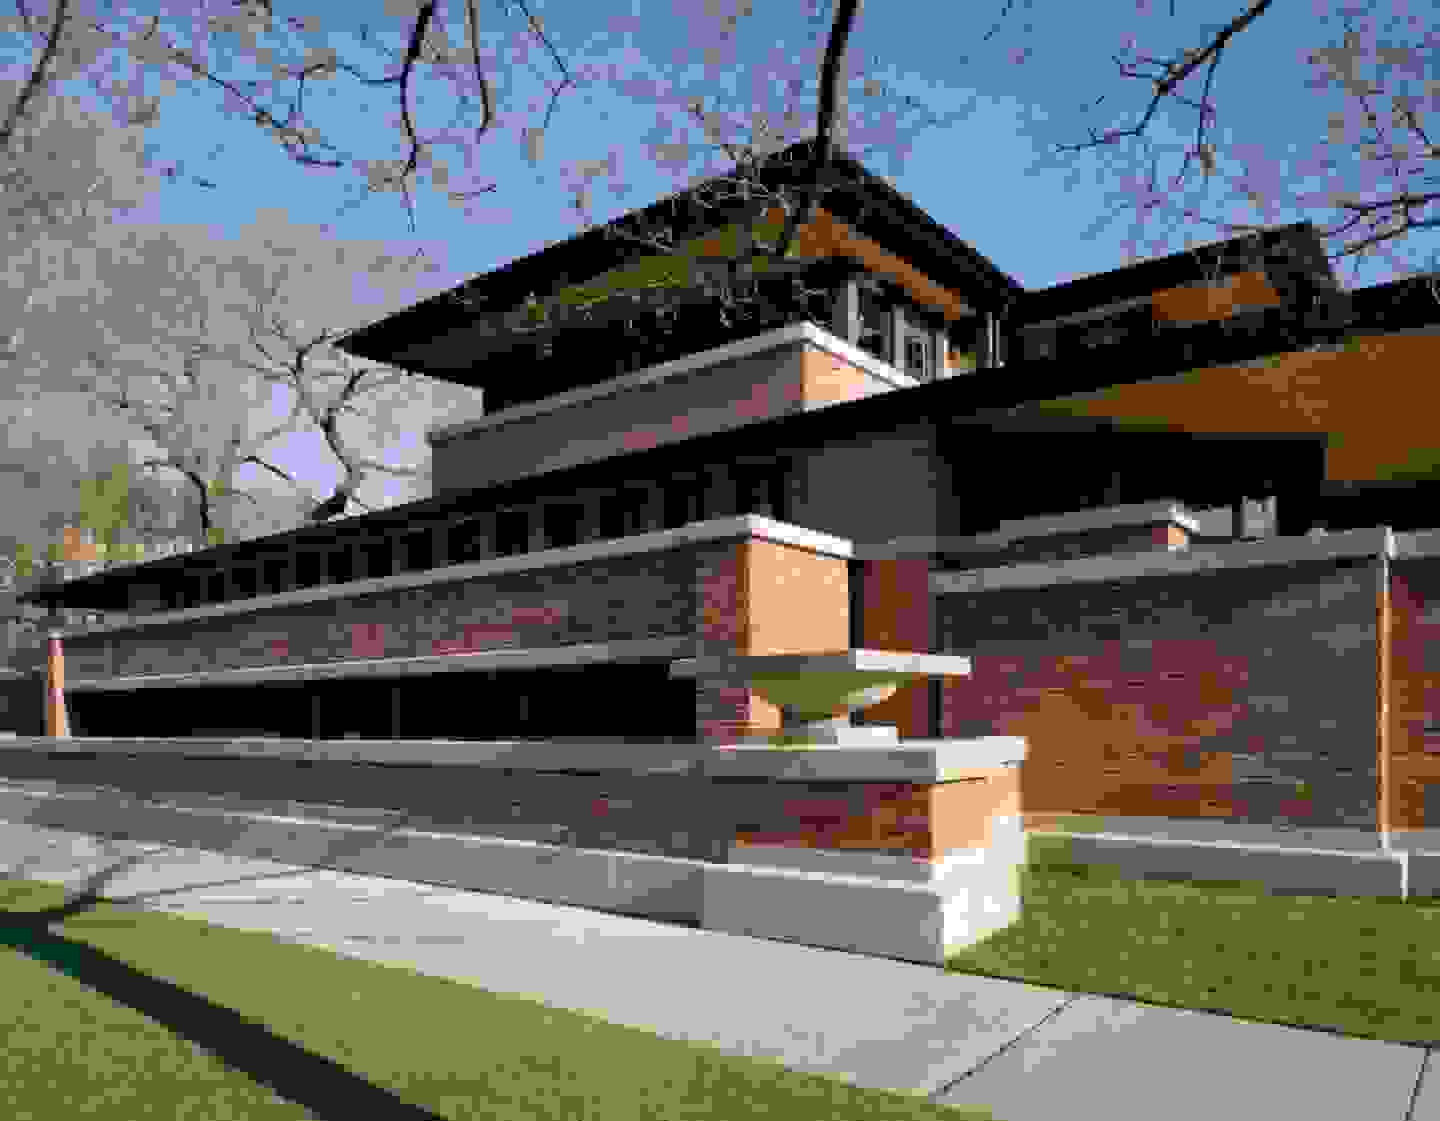 Frank Lloyd Wright's Robie House in Chicago | Source: franklloydwright.org